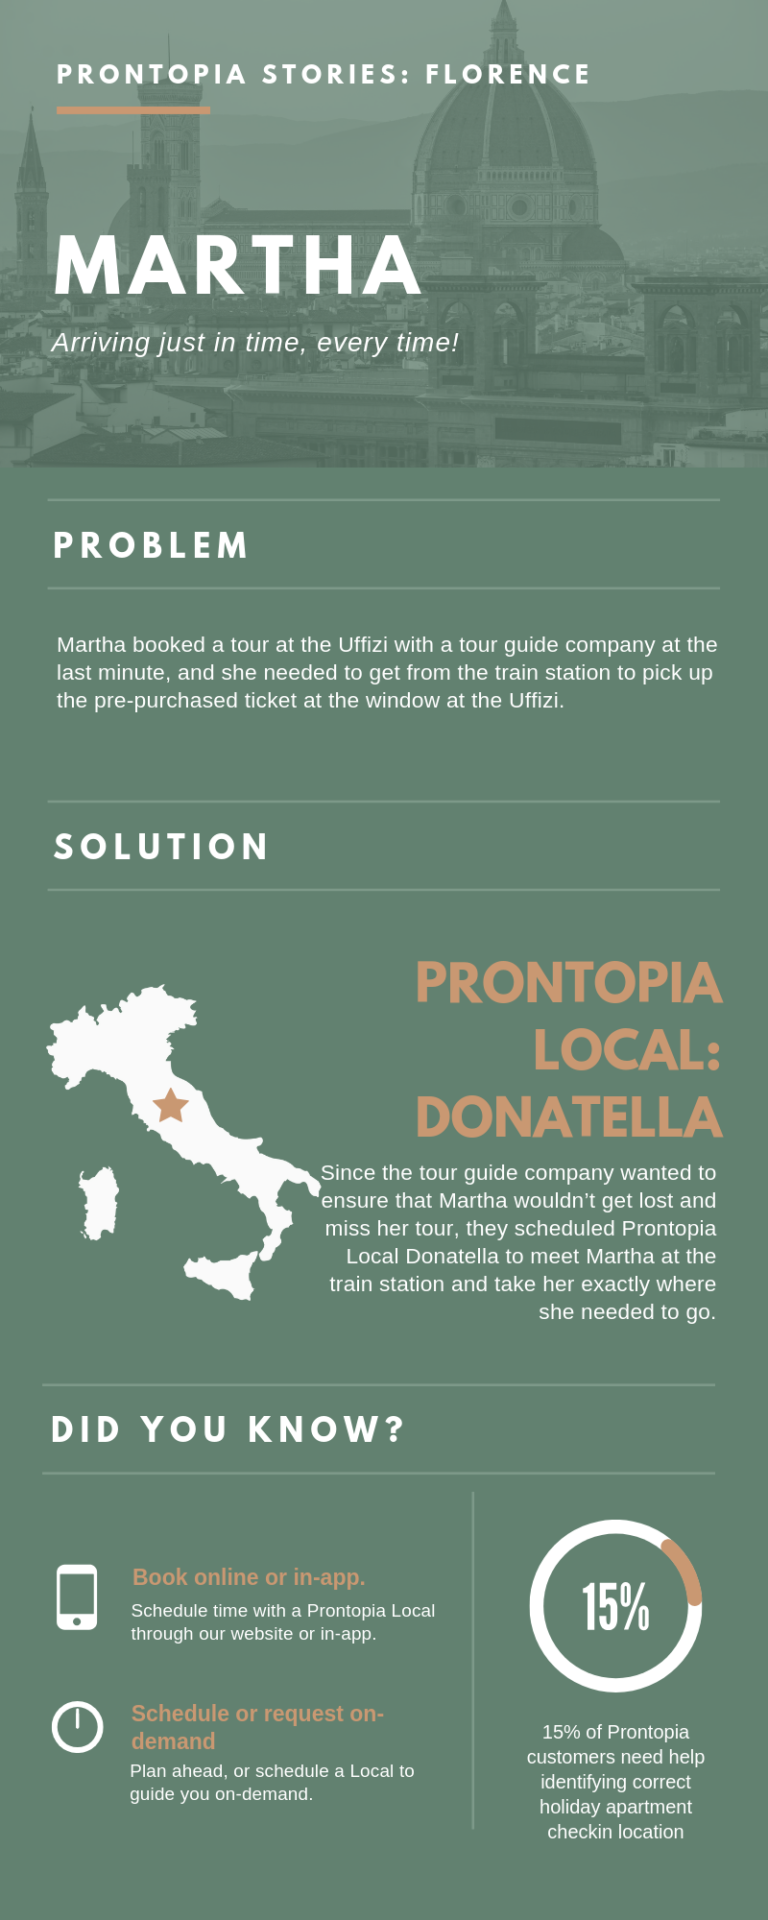 How to Use Prontopia in Florence? Marthas Story 0